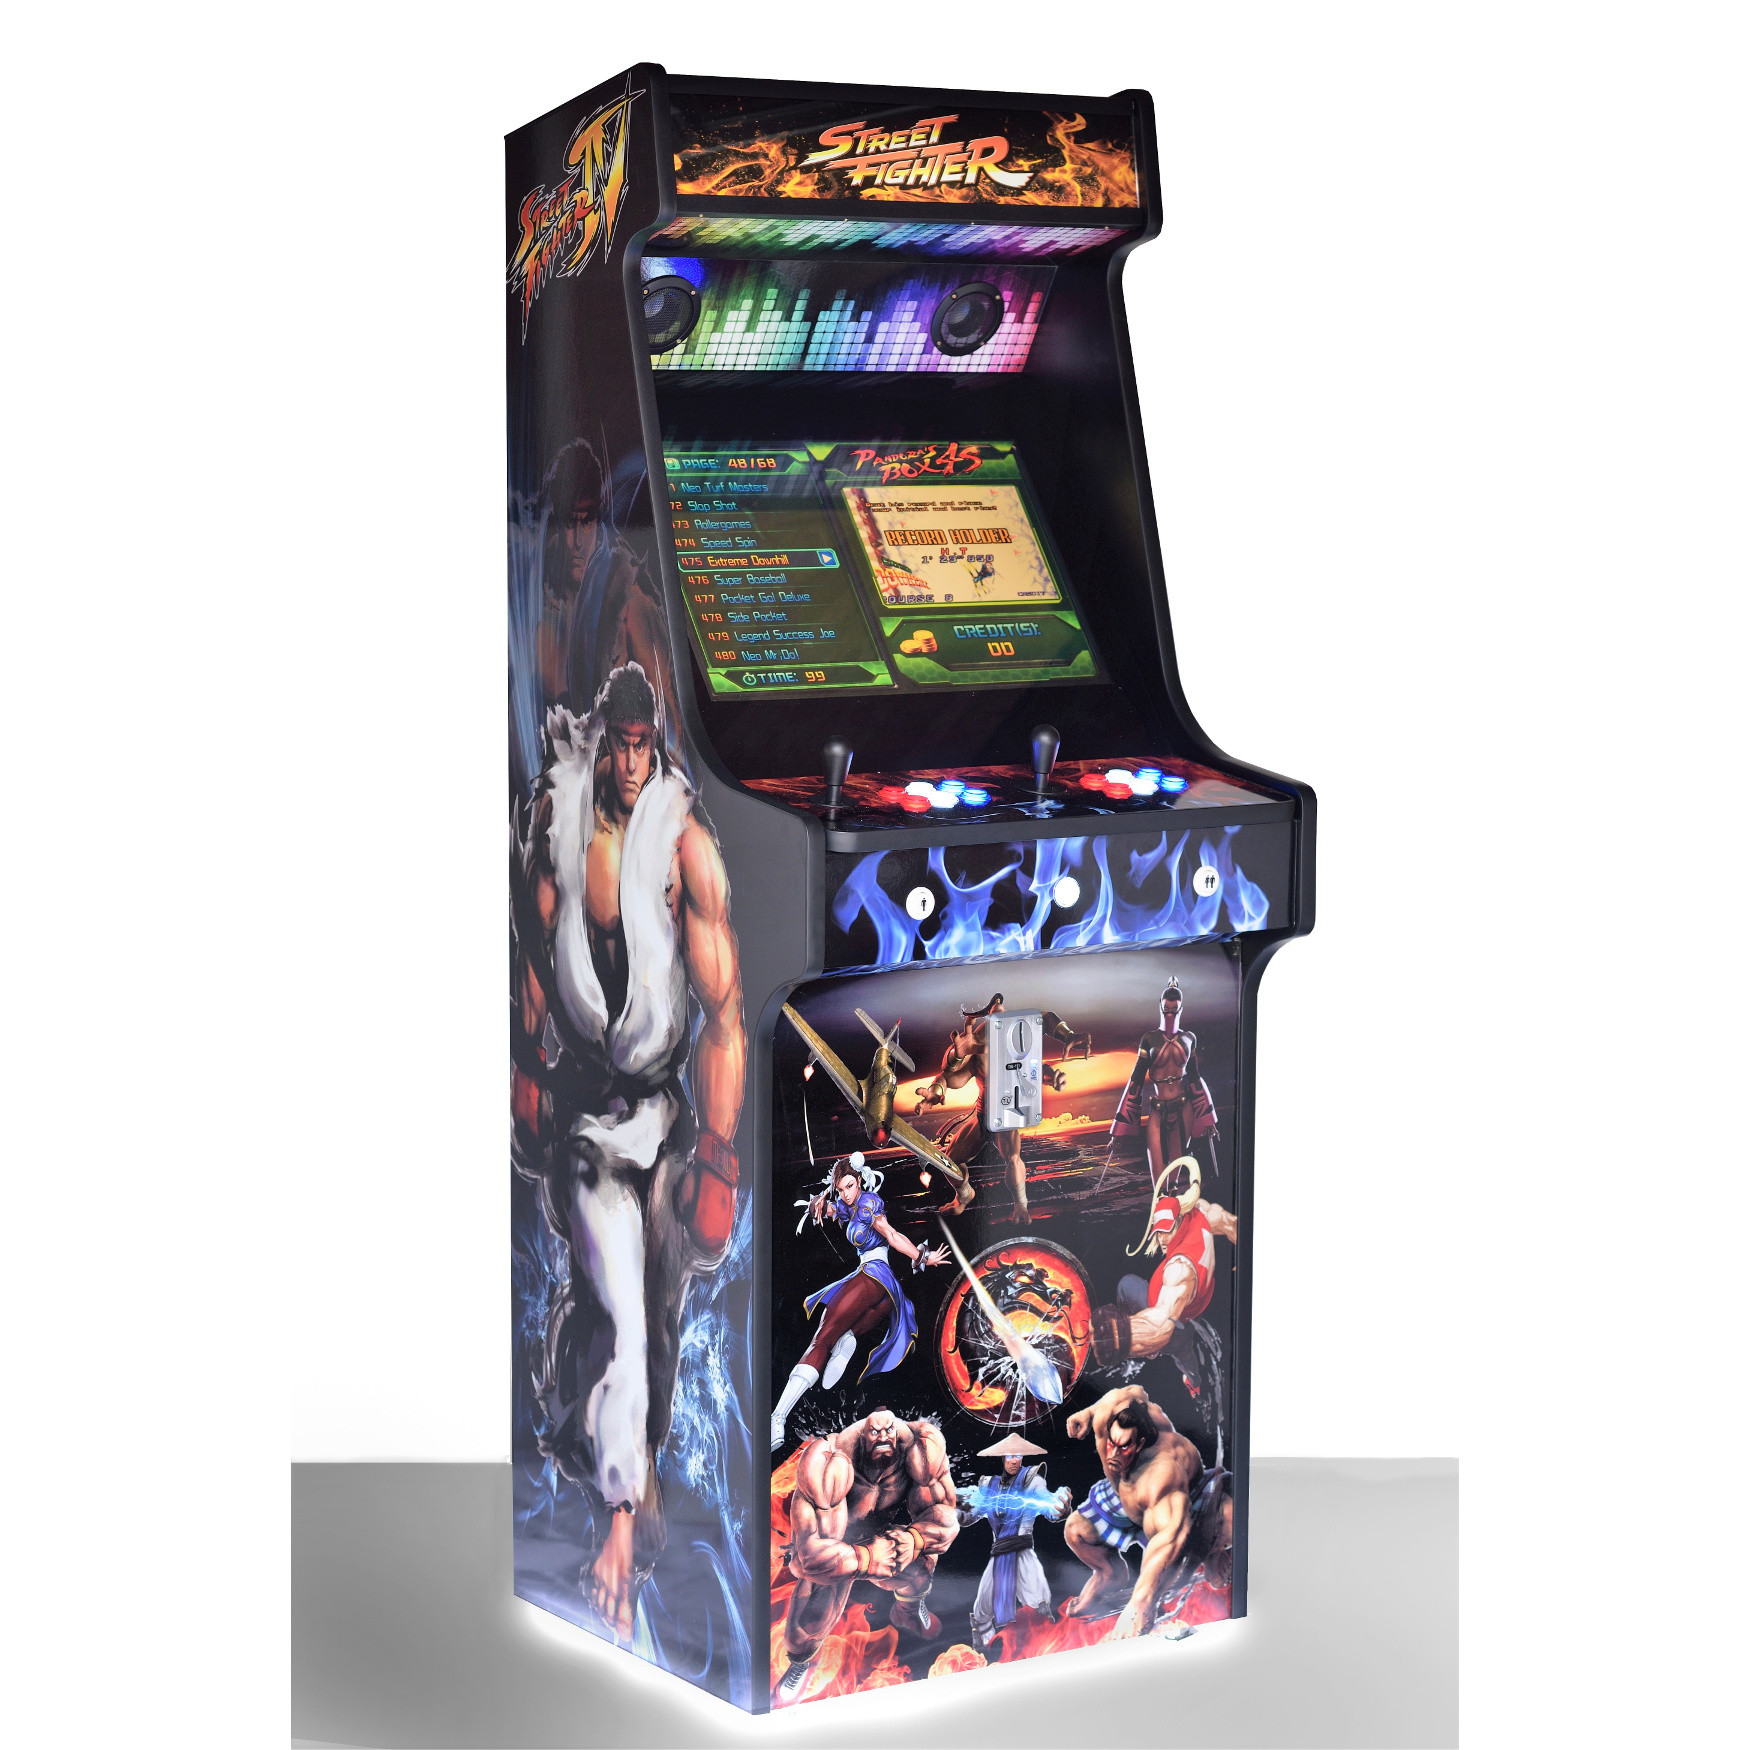 Retro Upright Arcade Machine Street Fighter Artwork 680